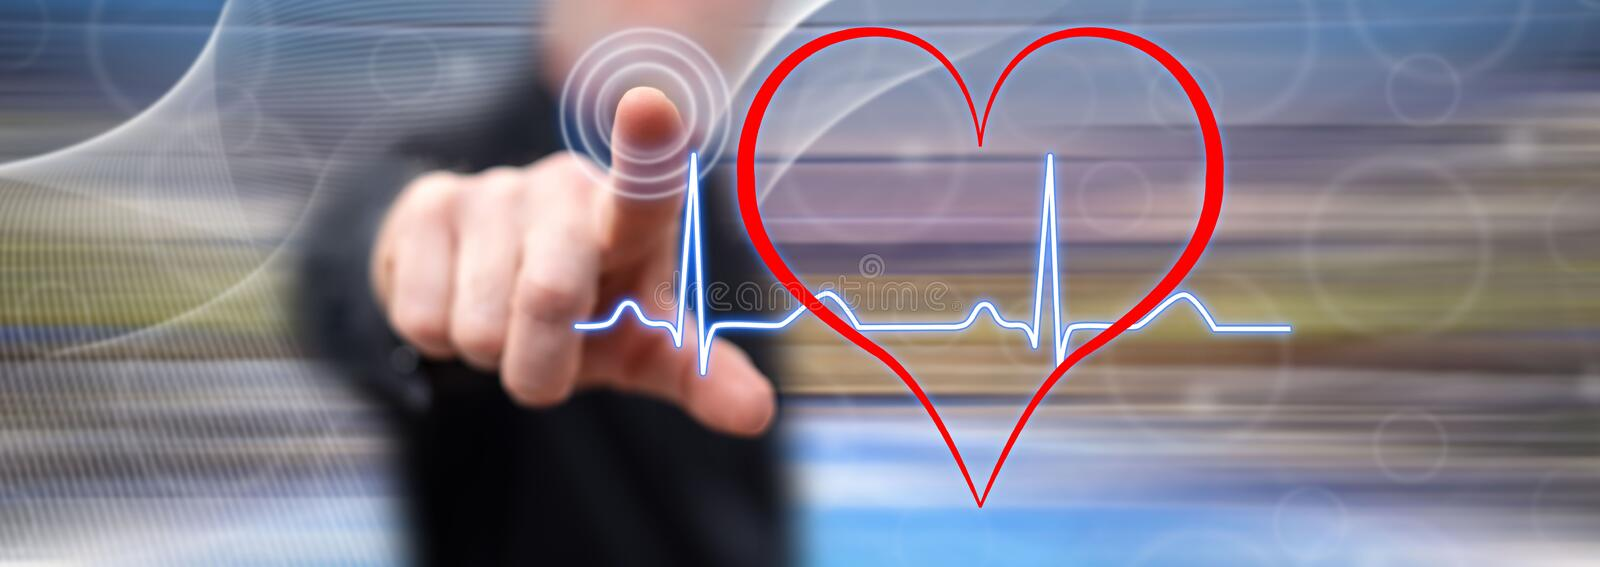 Man touching a heart beats graph stock illustration